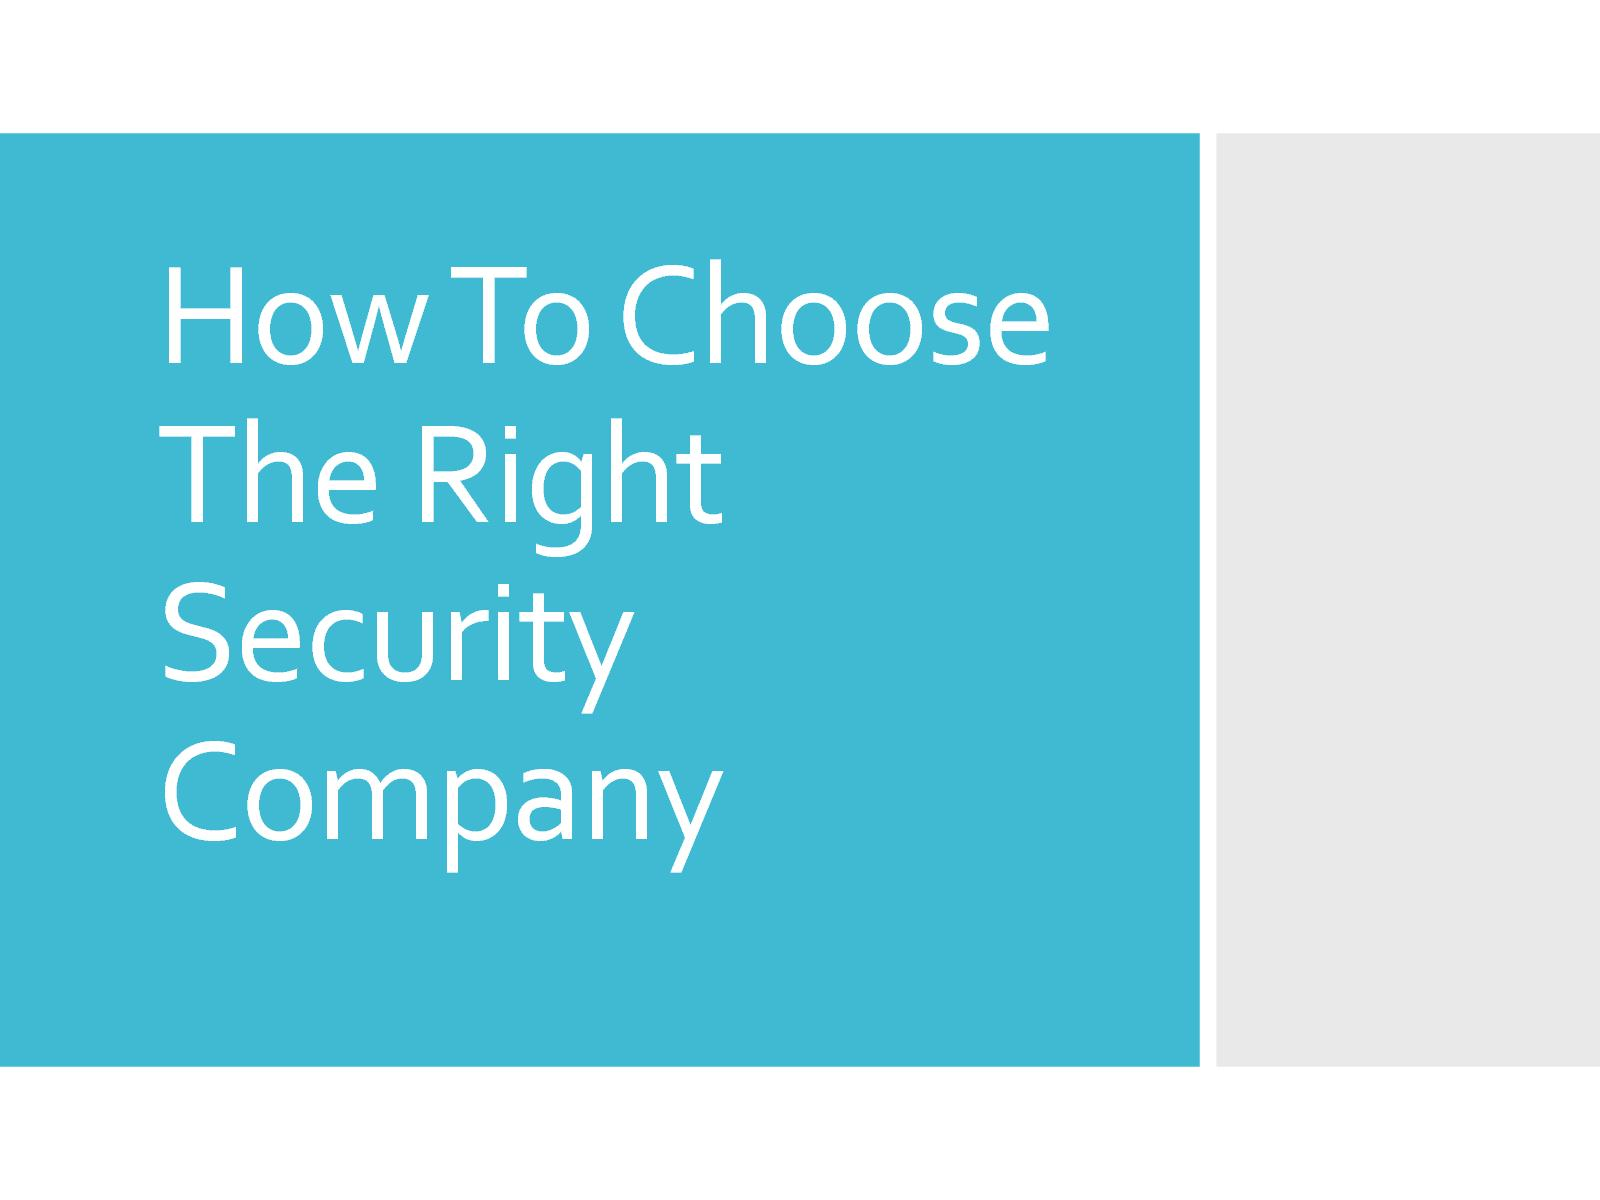 How to choose a security company 31